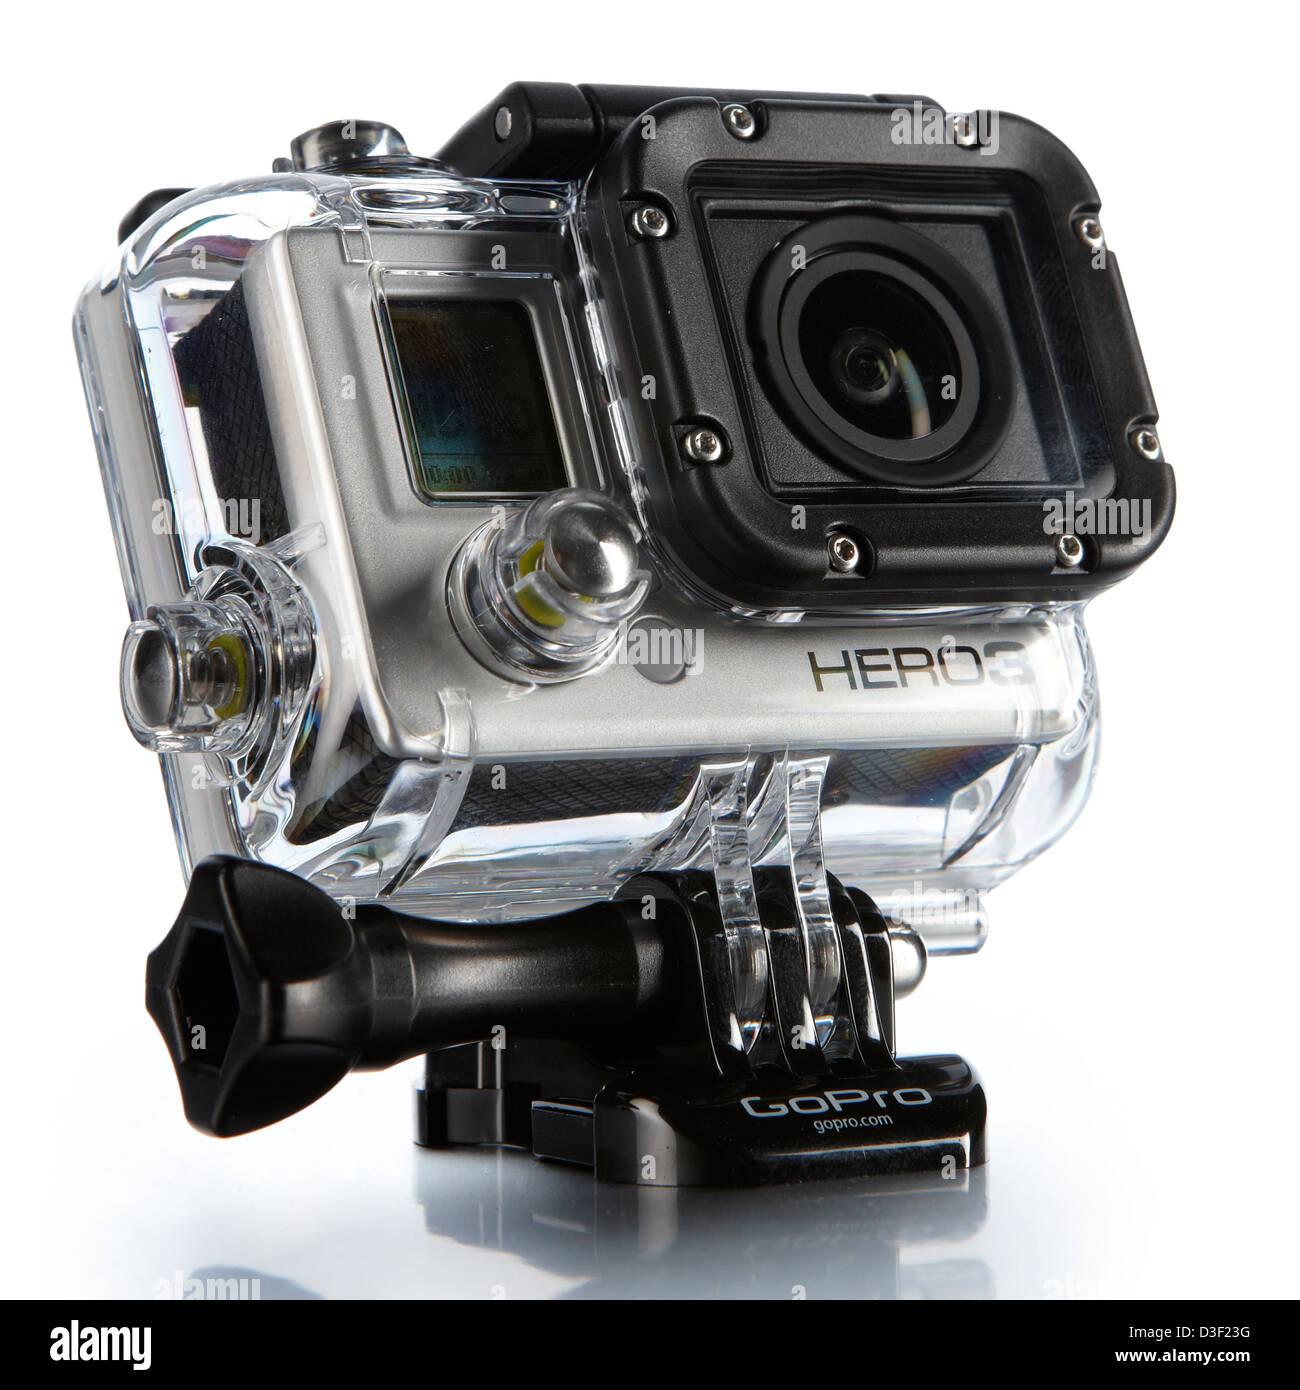 hero 3 black edition camera video HD - Stock Image